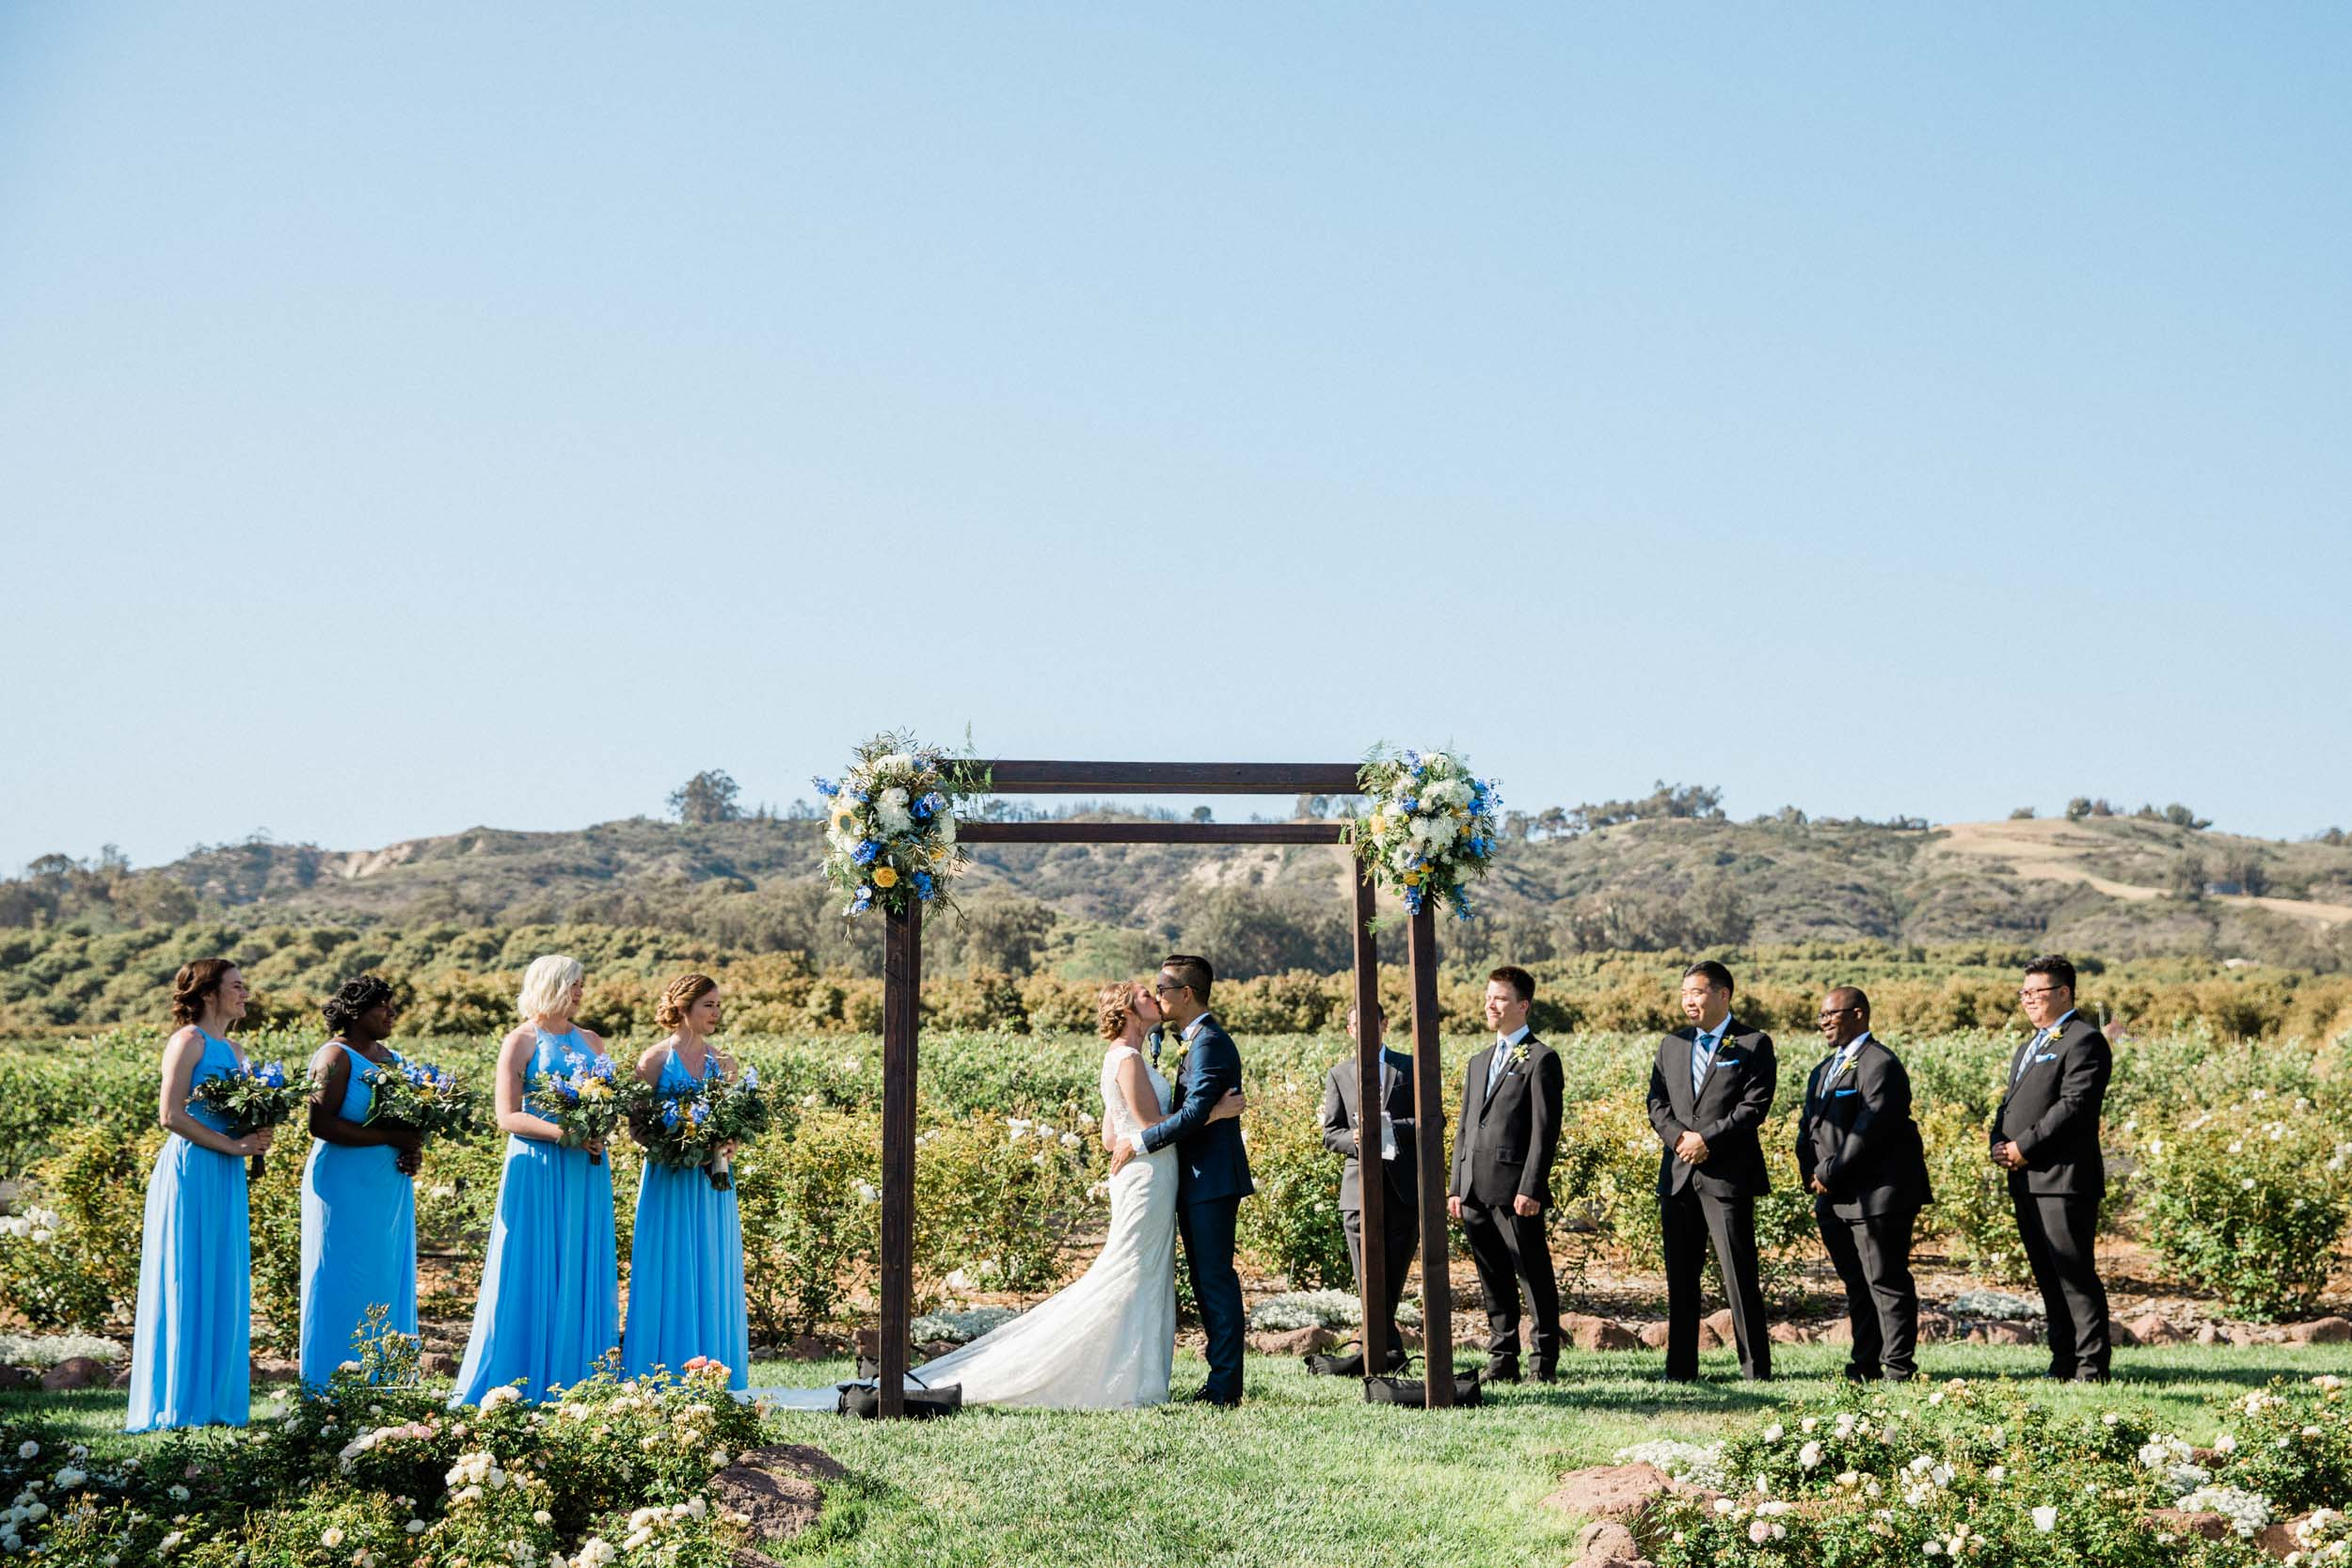 BKM-Photography-Gerry-Ranch-Southern-California-Wedding-0086.jpg